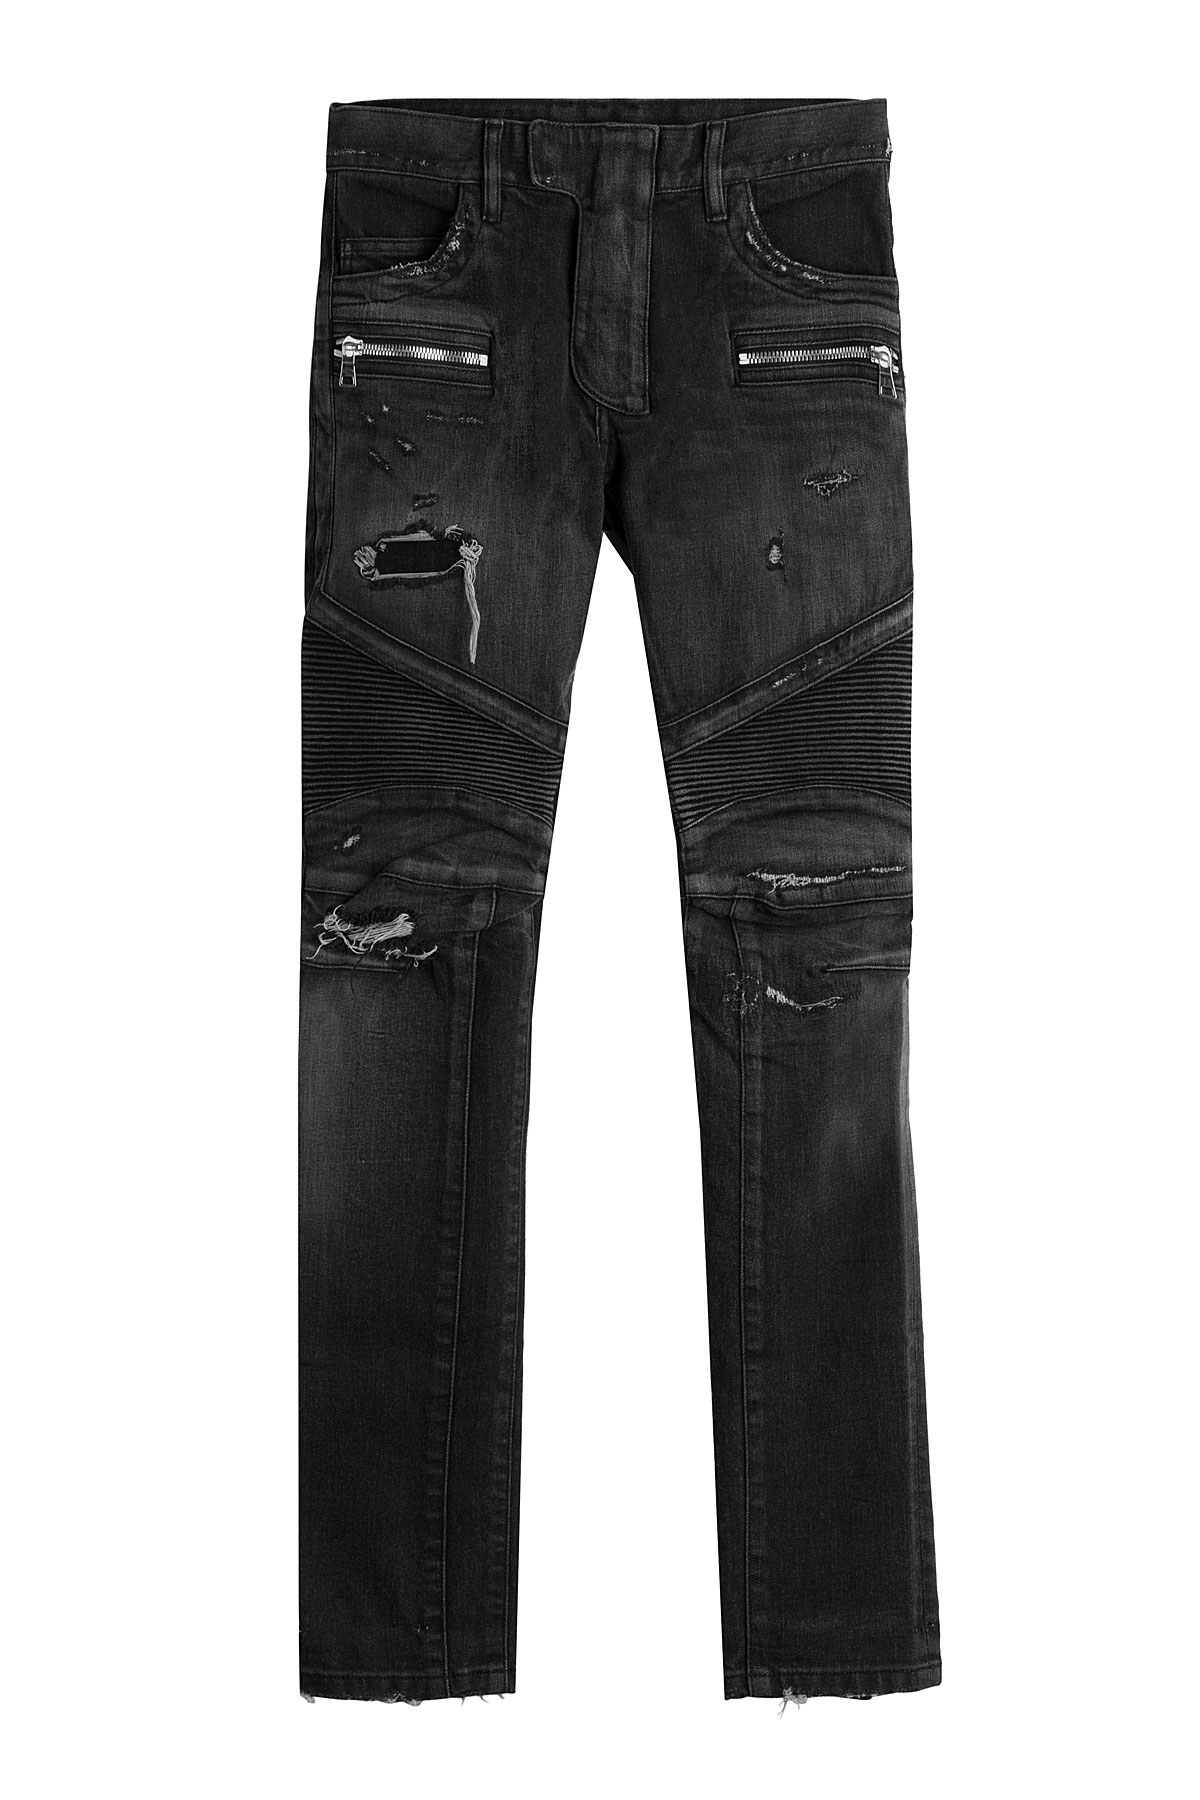 """Balmain biker skinny fit jeans. Black. W34 but prob fit as they are slim fitting. Looked after, but colour is starting to fade as seen in pics, around the seems. No time wasters please; Do not b PIERRE BALMAIN 30"""" Mens Skinny Jeans BNWT RRP £ £ 1 bid + £ P&P."""